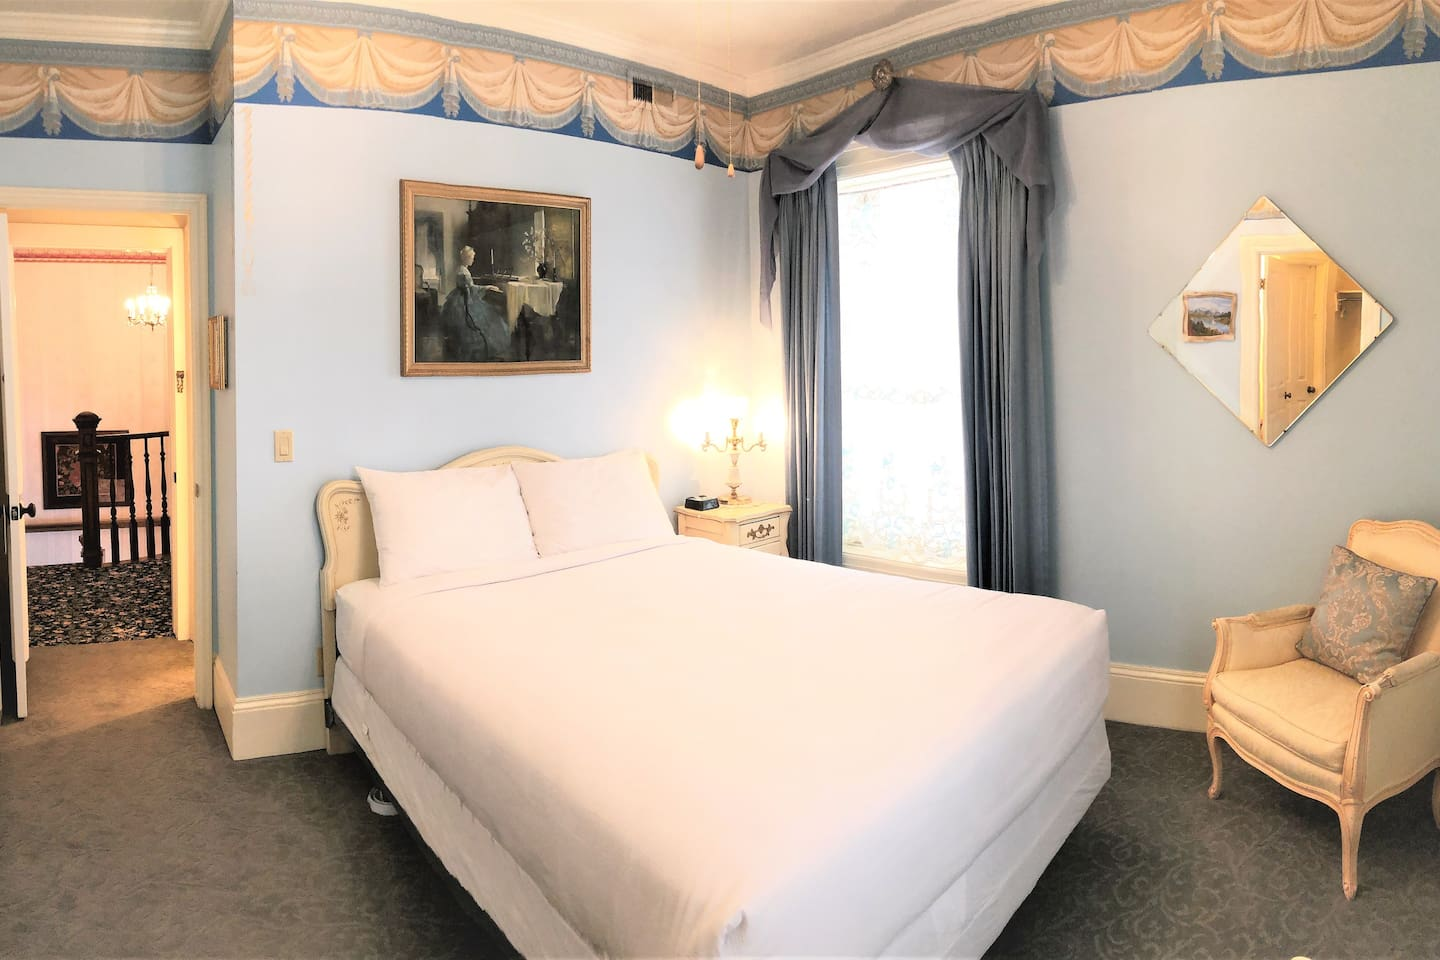 The Blue Room offers a queen bed and a private, 3/4 bath.  There is also an adjoining powder room with a desk area.  Other amenities include a ironing board with iron, a hair dryer and a digital clock with USB connectors.